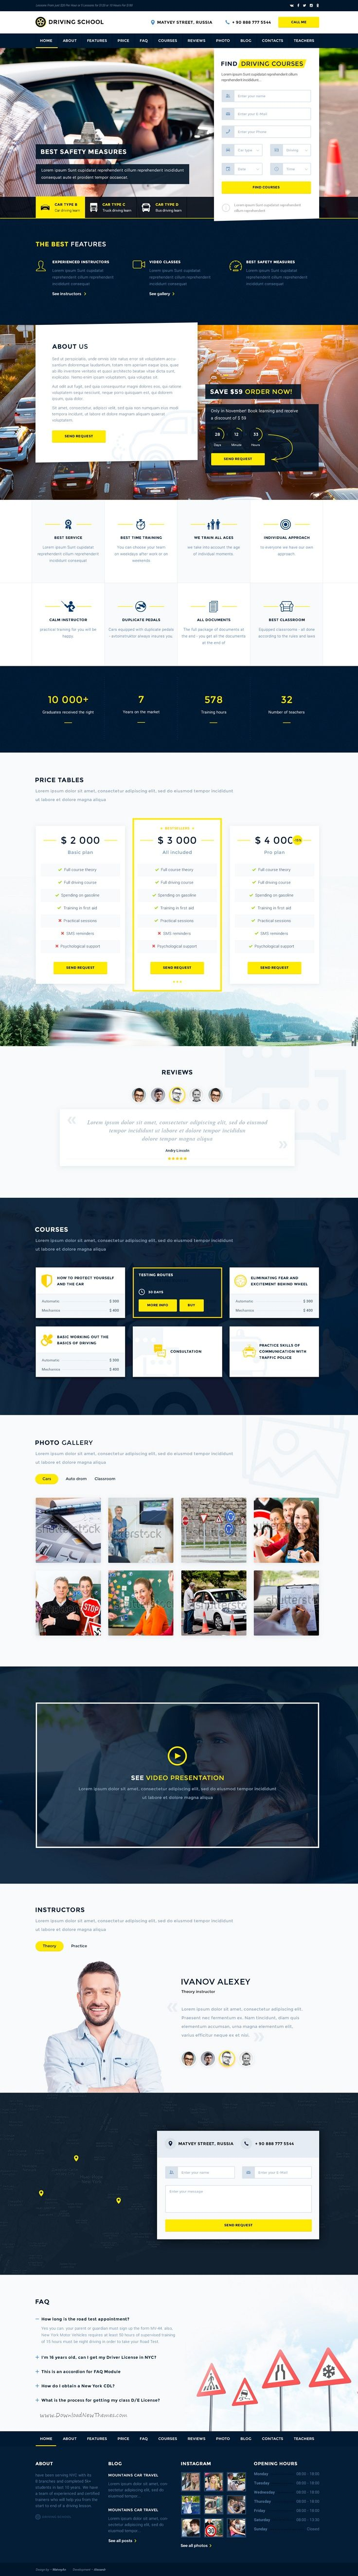 Driving school is perfect premium #PSD template for #driving #schools website with 3 landing page and 54 organized PSD pages download now➯ https://themeforest.net/item/driving-school-54-responsive-psd-templates/16986363?ref=Datasata